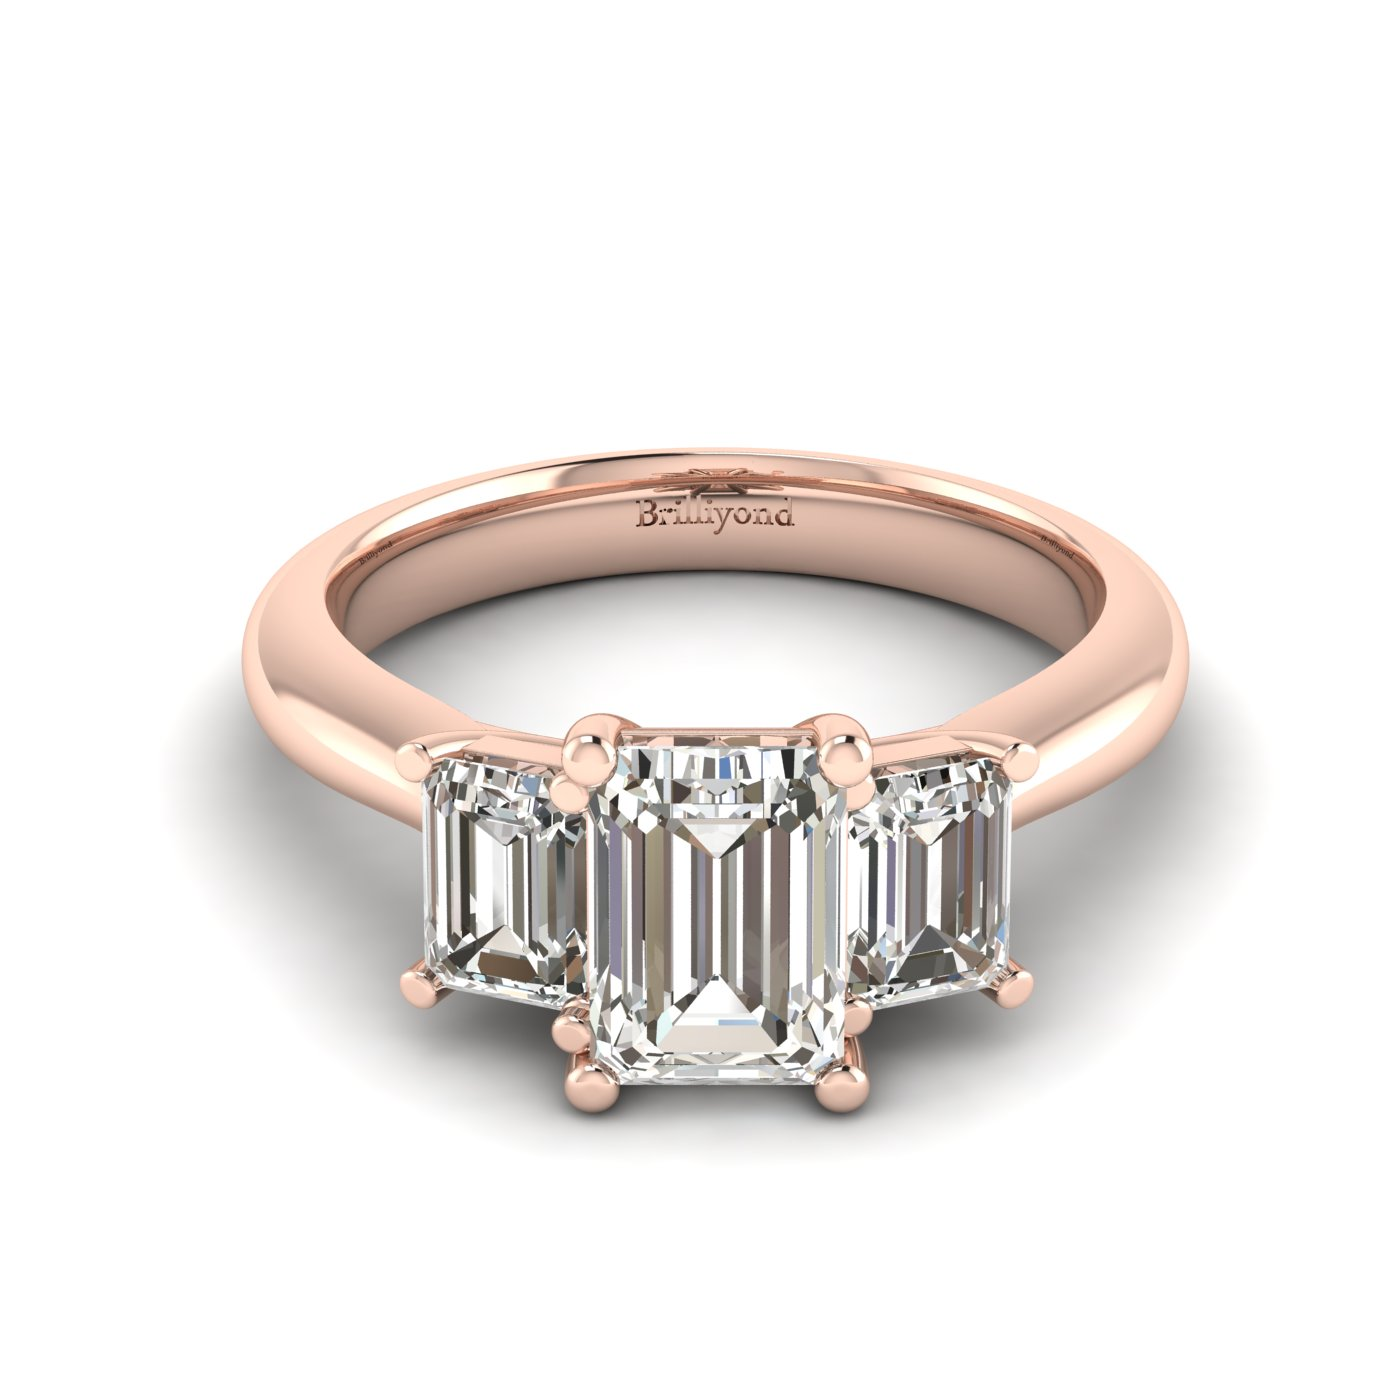 White Sapphire Rose Gold Emerald Cut Engagement Ring Blanche_image1